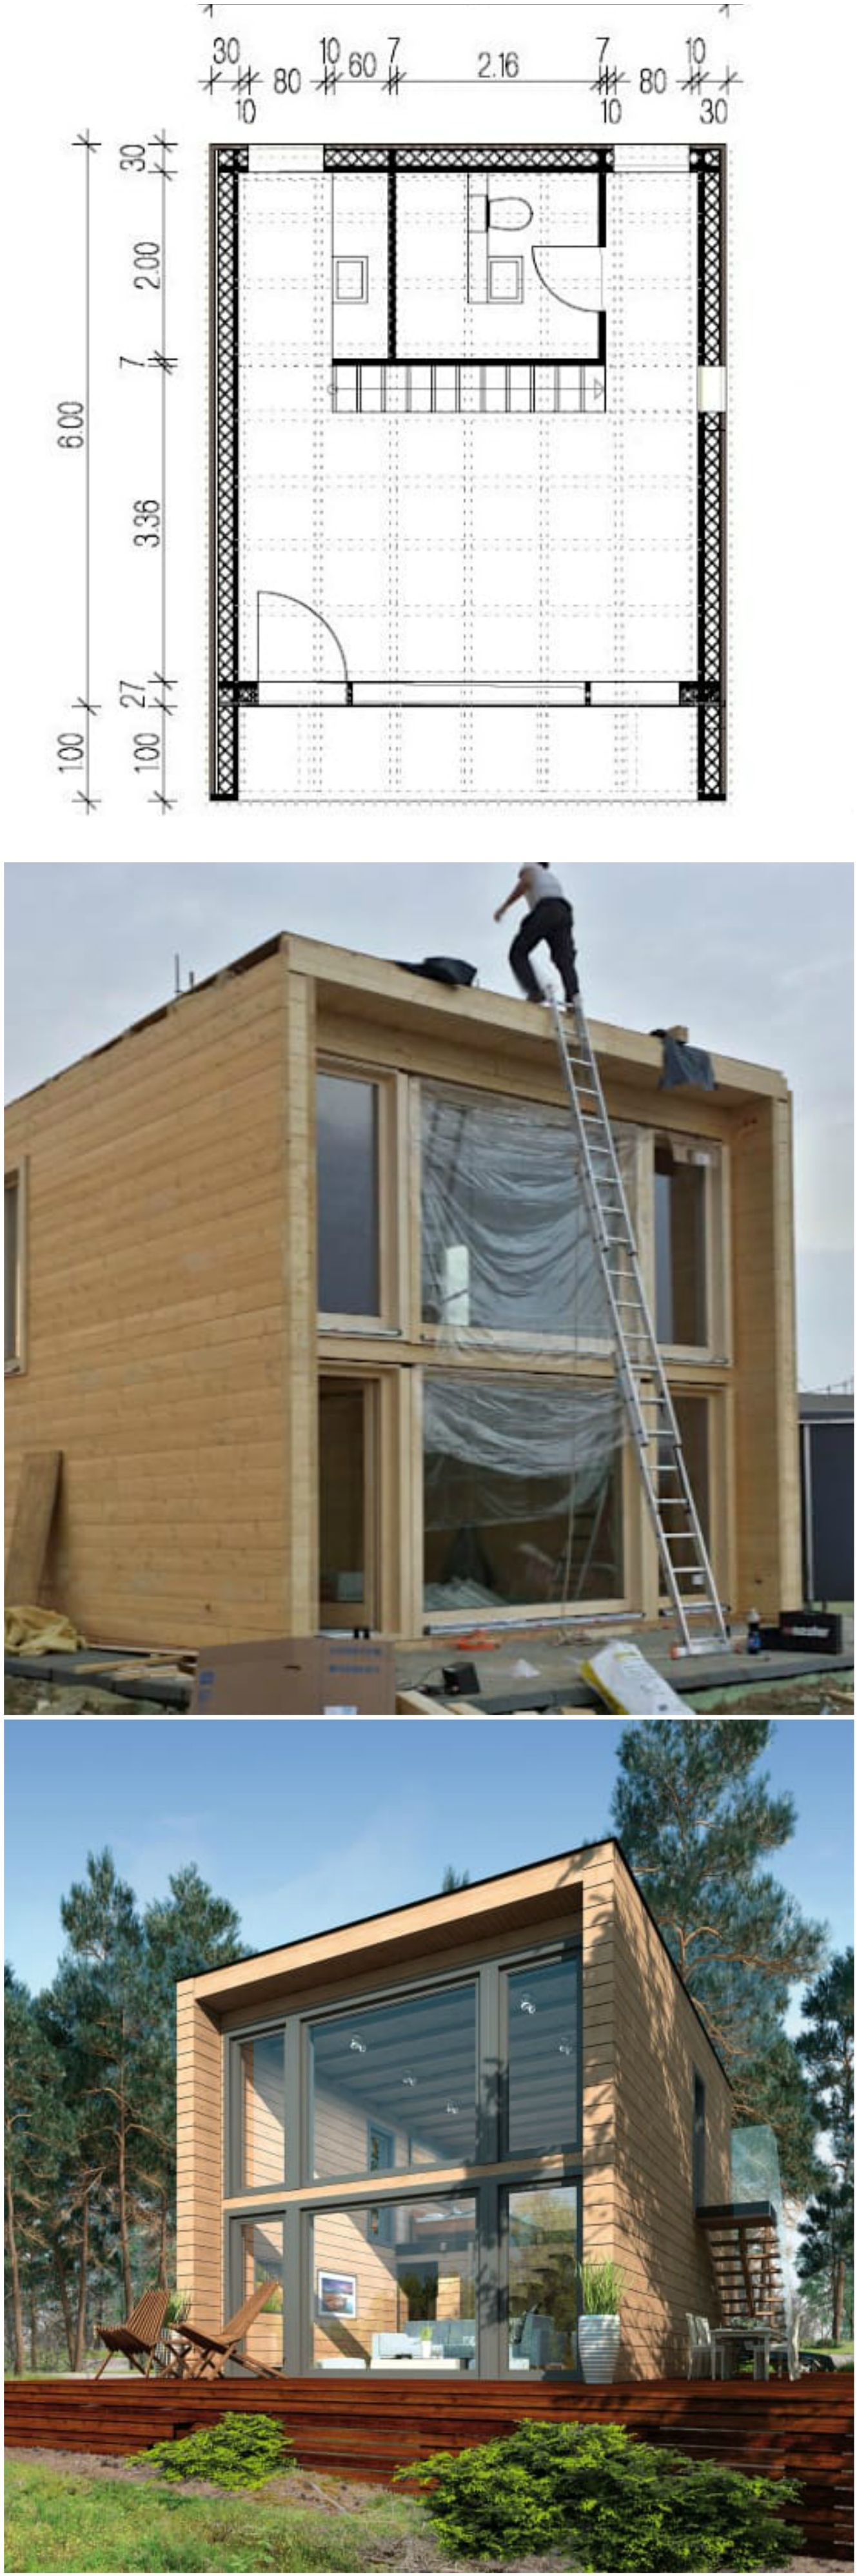 Ke mabati rolling mills rolls out prefab houses ideas for the house pinterest prefab milling and rolls